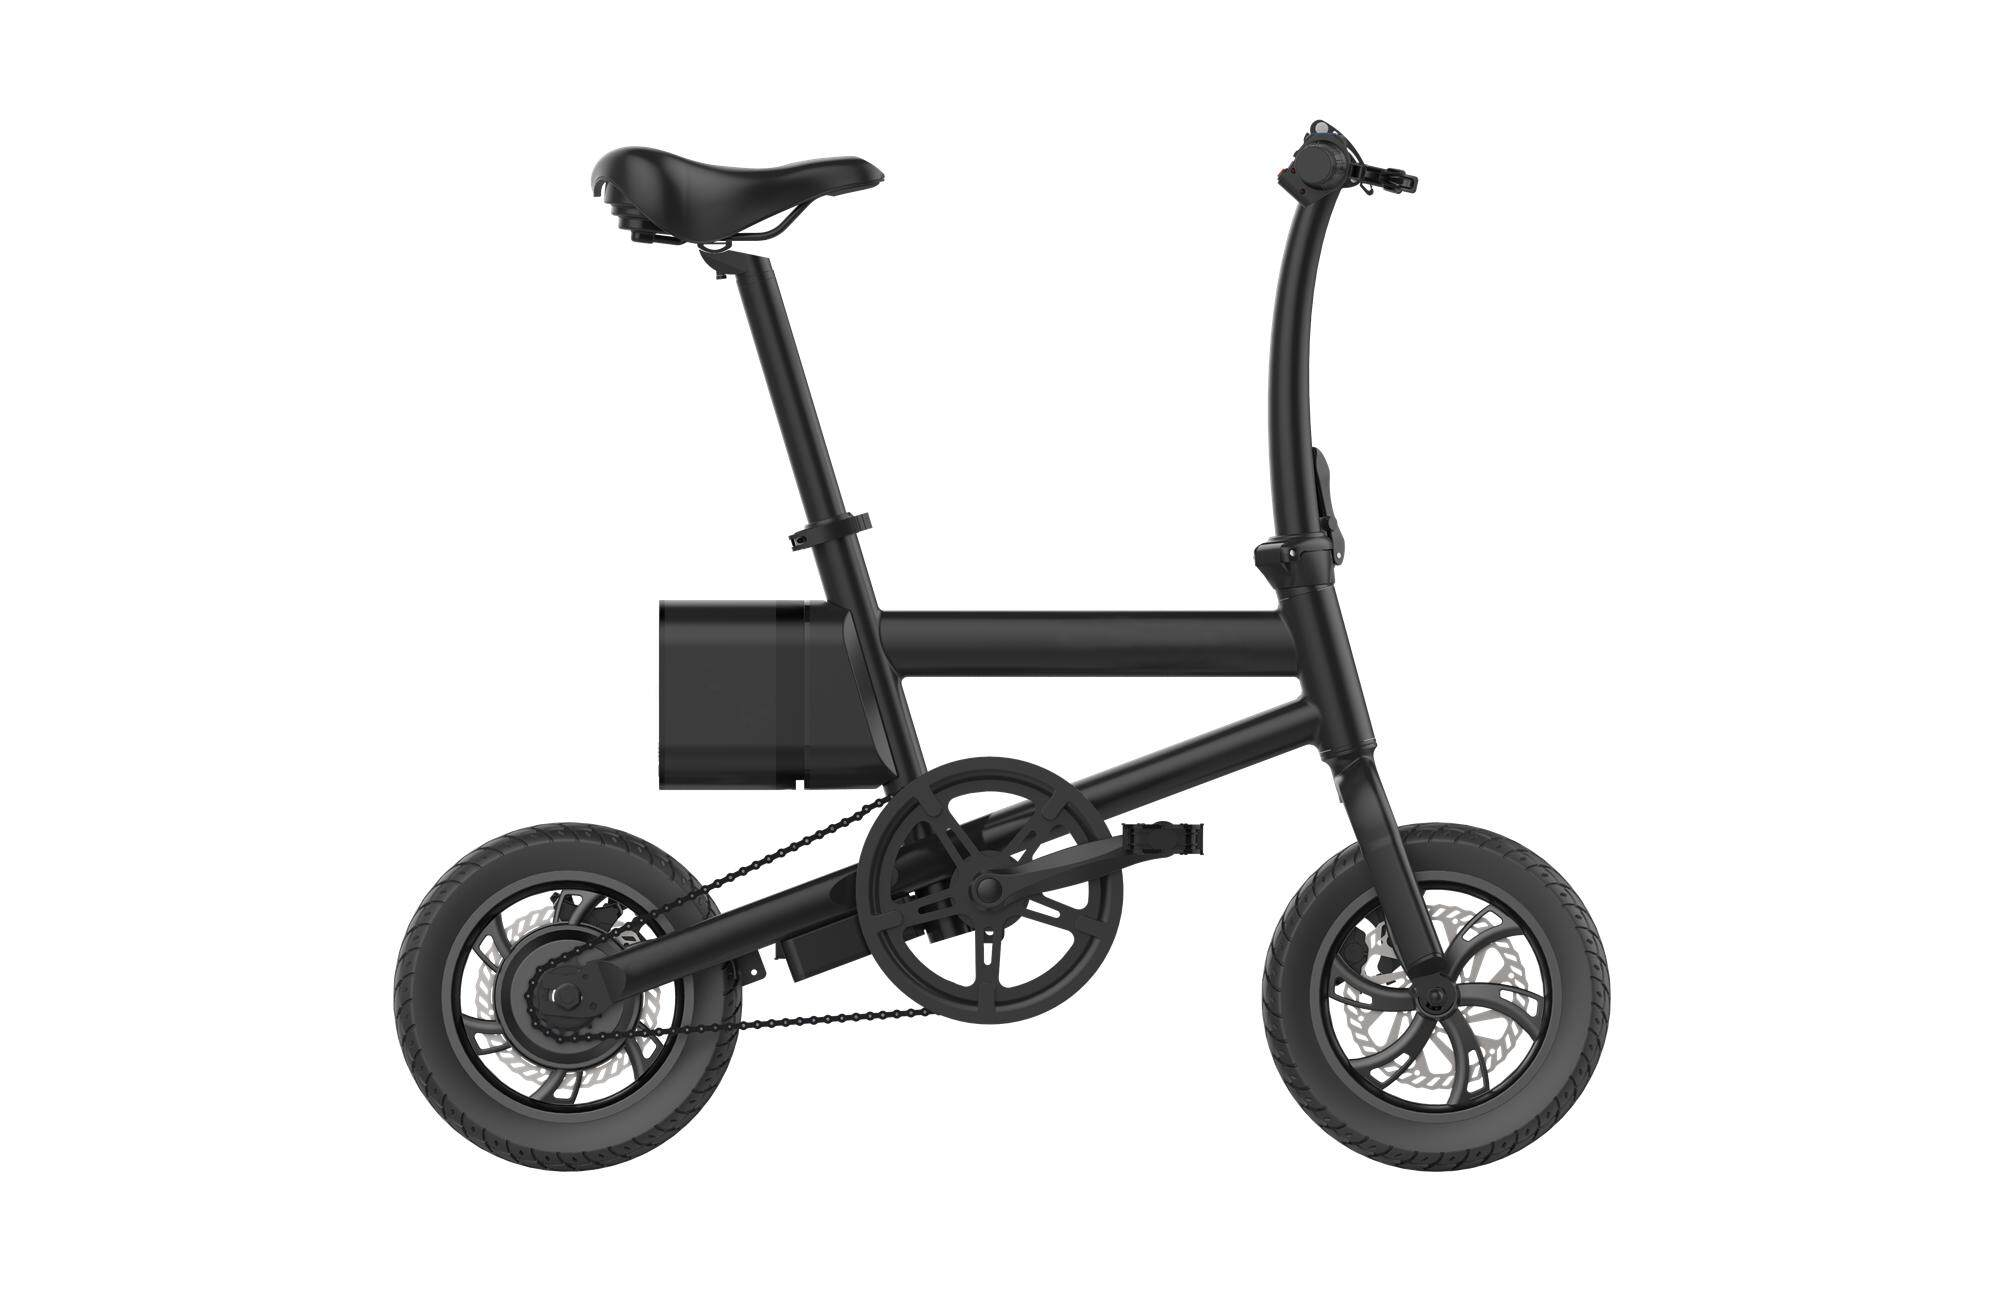 Foldable Electric Bicycle B2 By Ebike Malaysia.